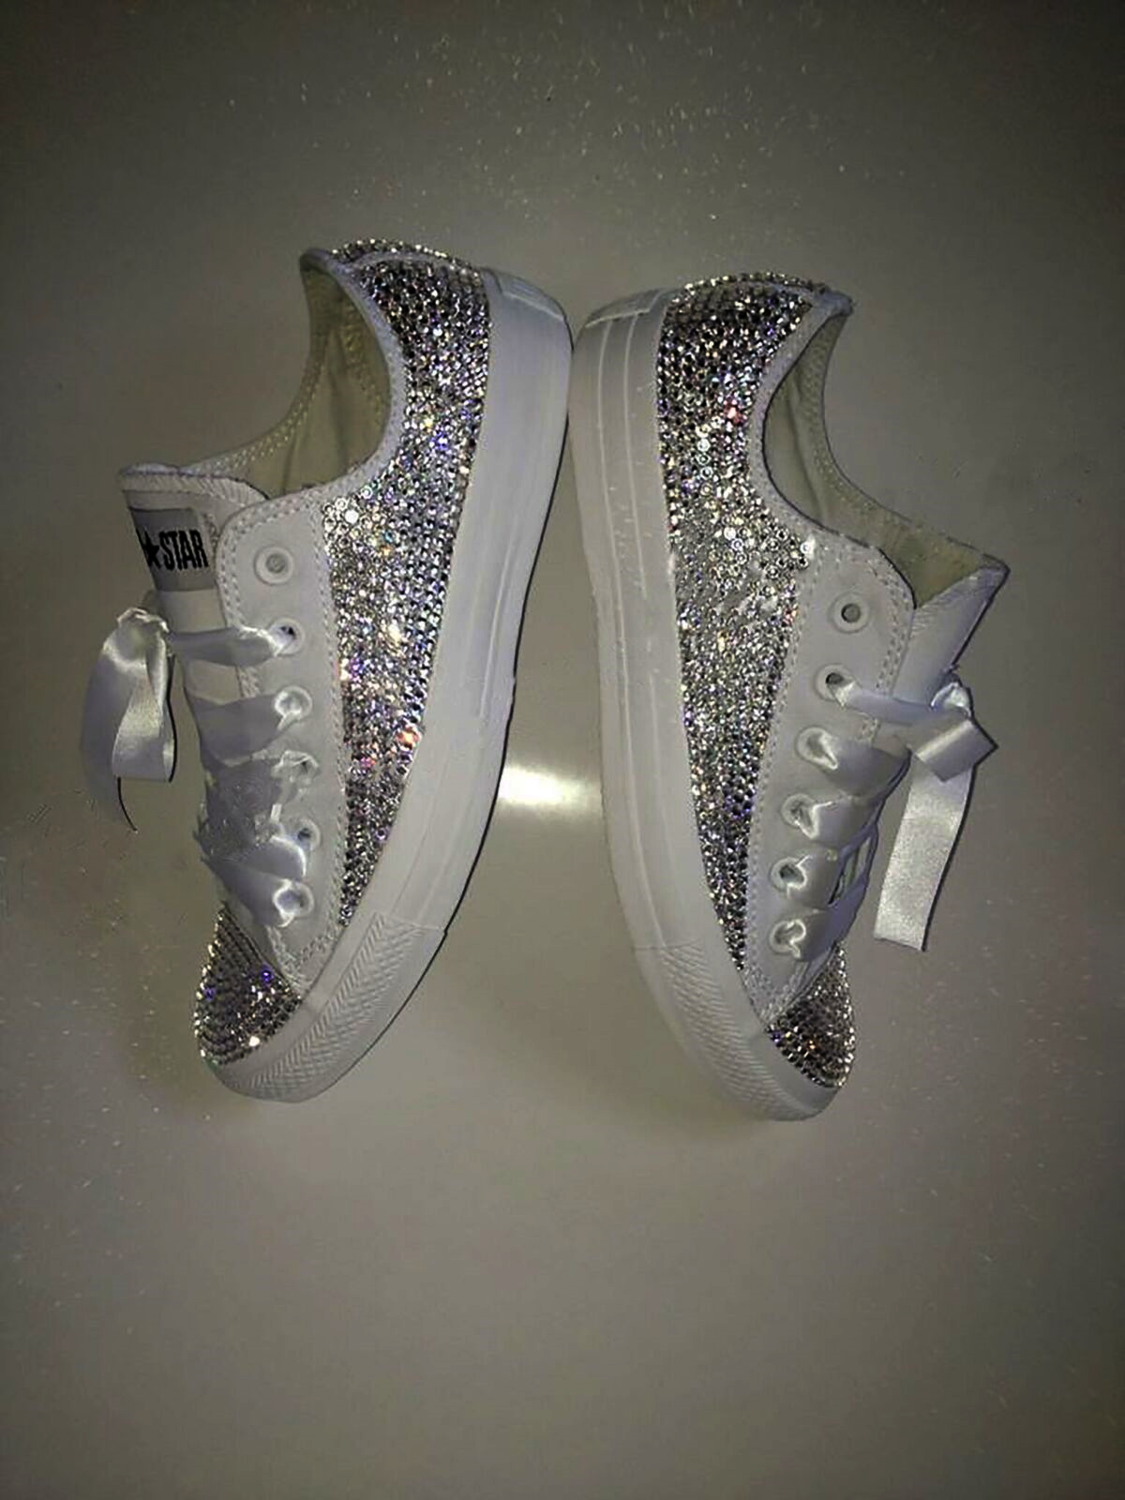 afa025b18bc42 Swarovski Crystal Sparkly Bling Converse Trainers (Adults ...